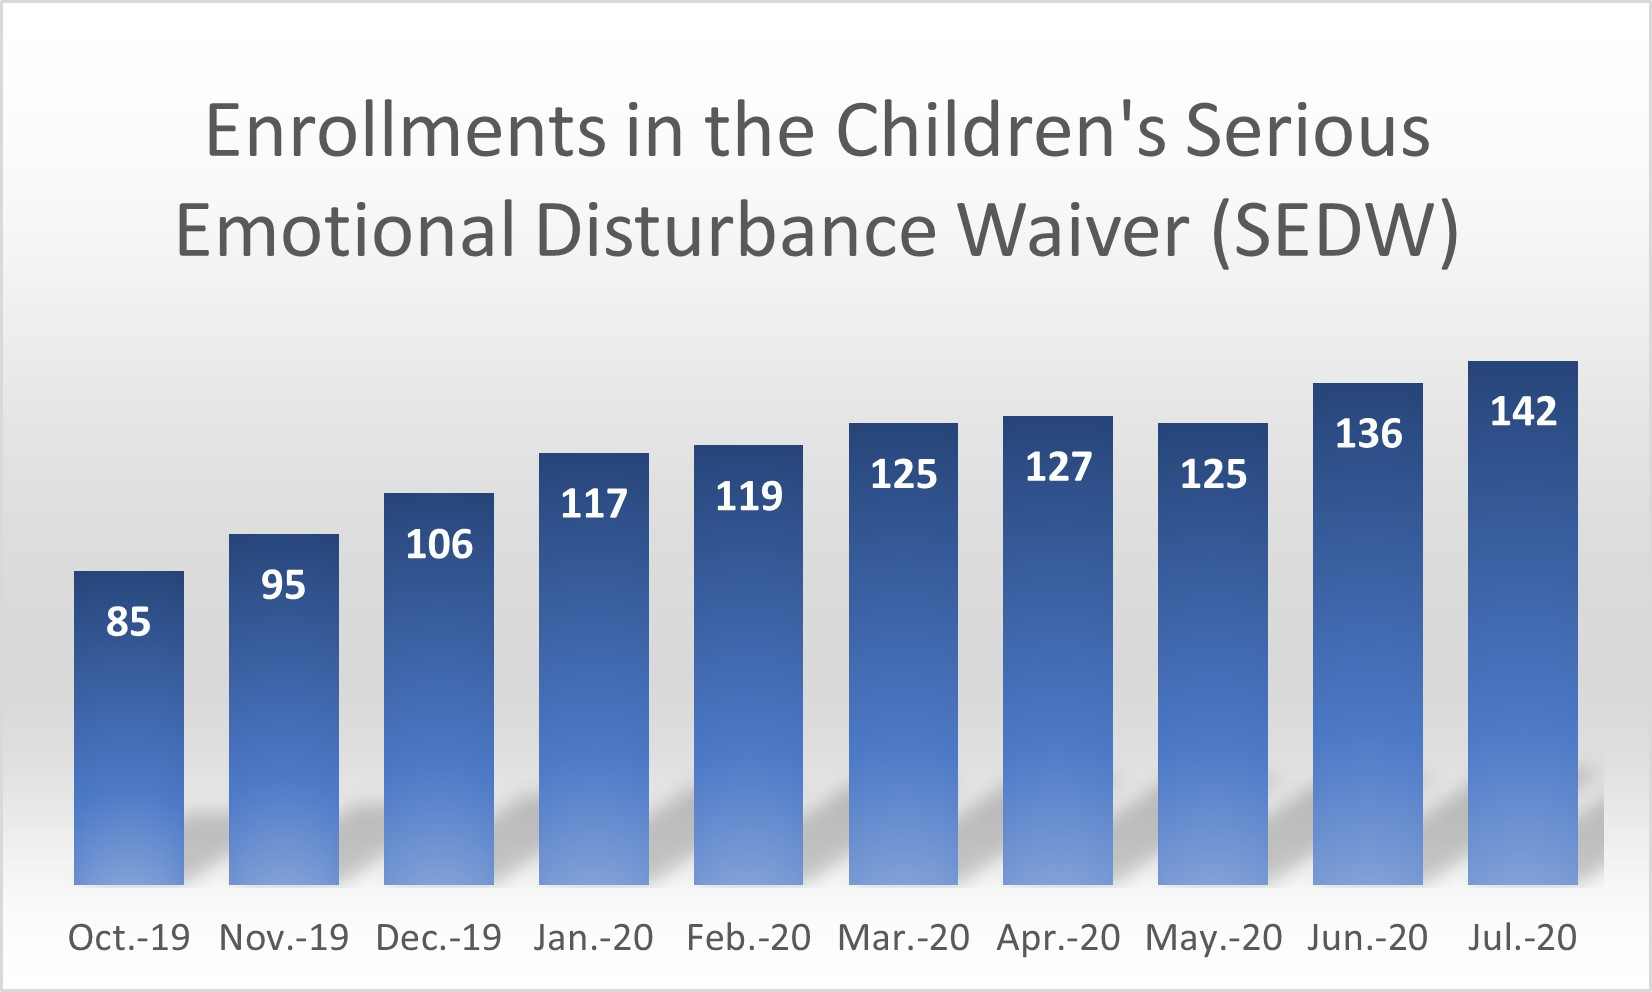 Serious Emotional Disturbance Waiver (SEDW) Enrollment